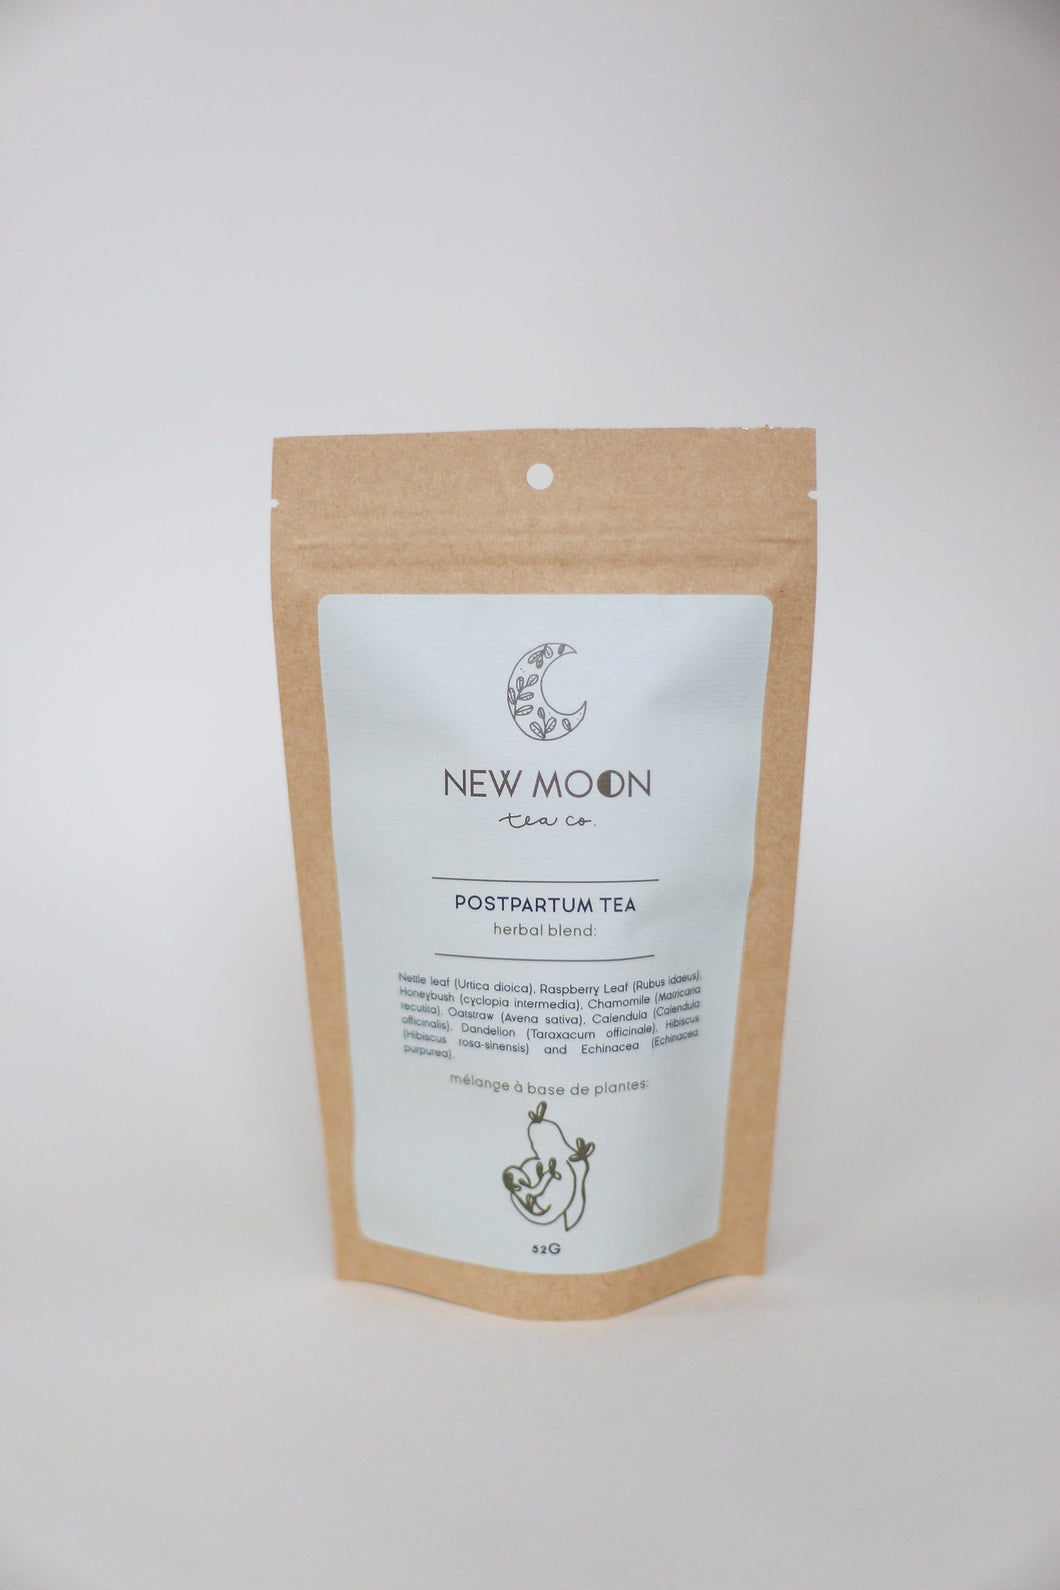 Post Partum Tea by New Moon Tea Co.